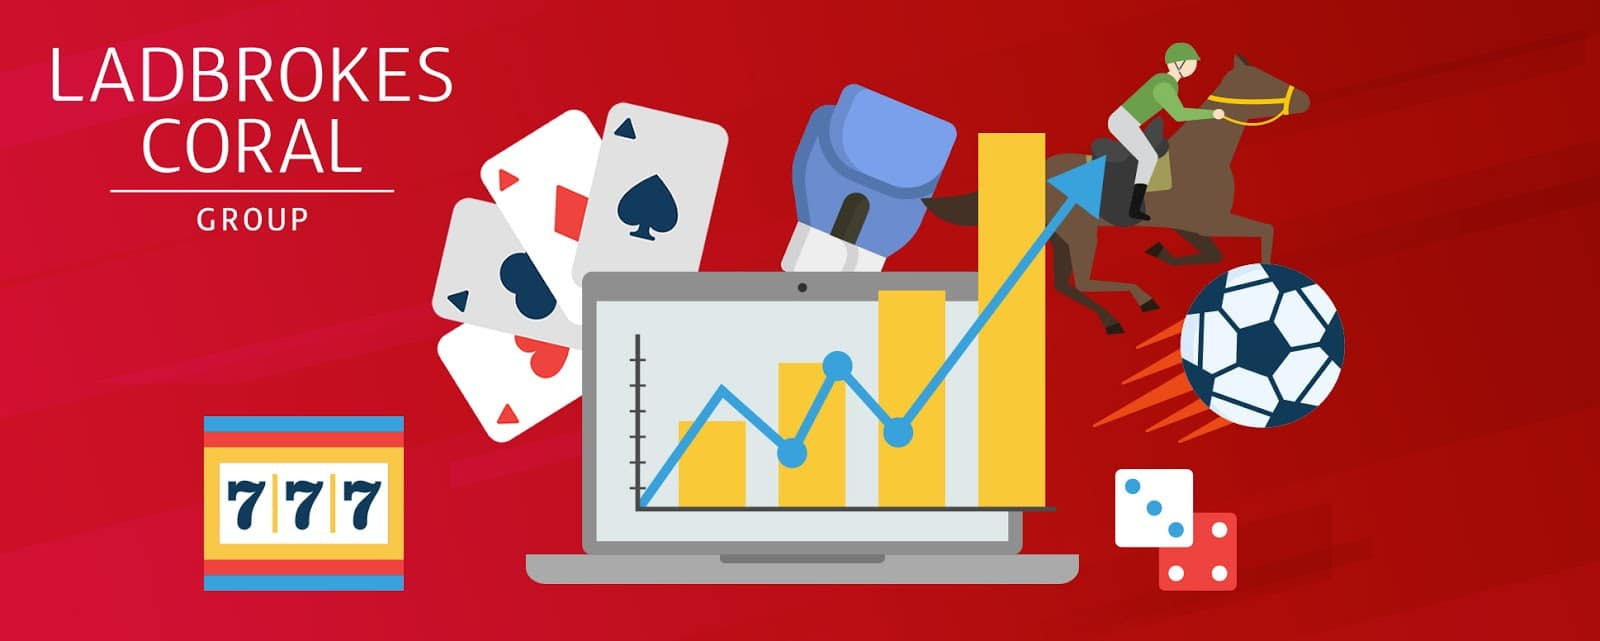 Ladbrokes Coral: Adopting Digital Analytics Data Governance to Increase Data Quality and Efficiency